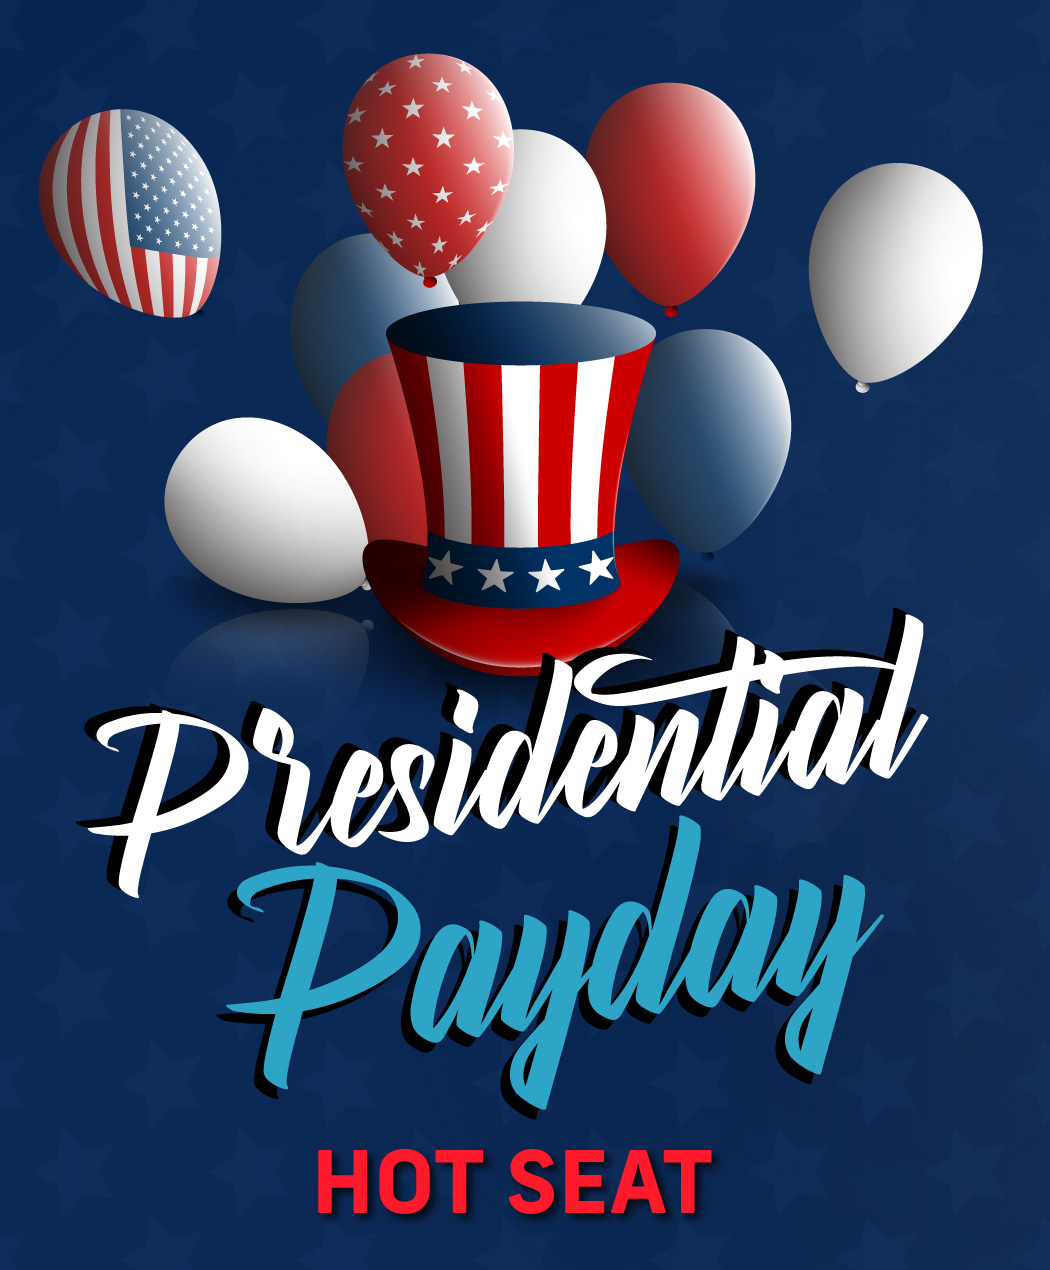 Presidential Payday